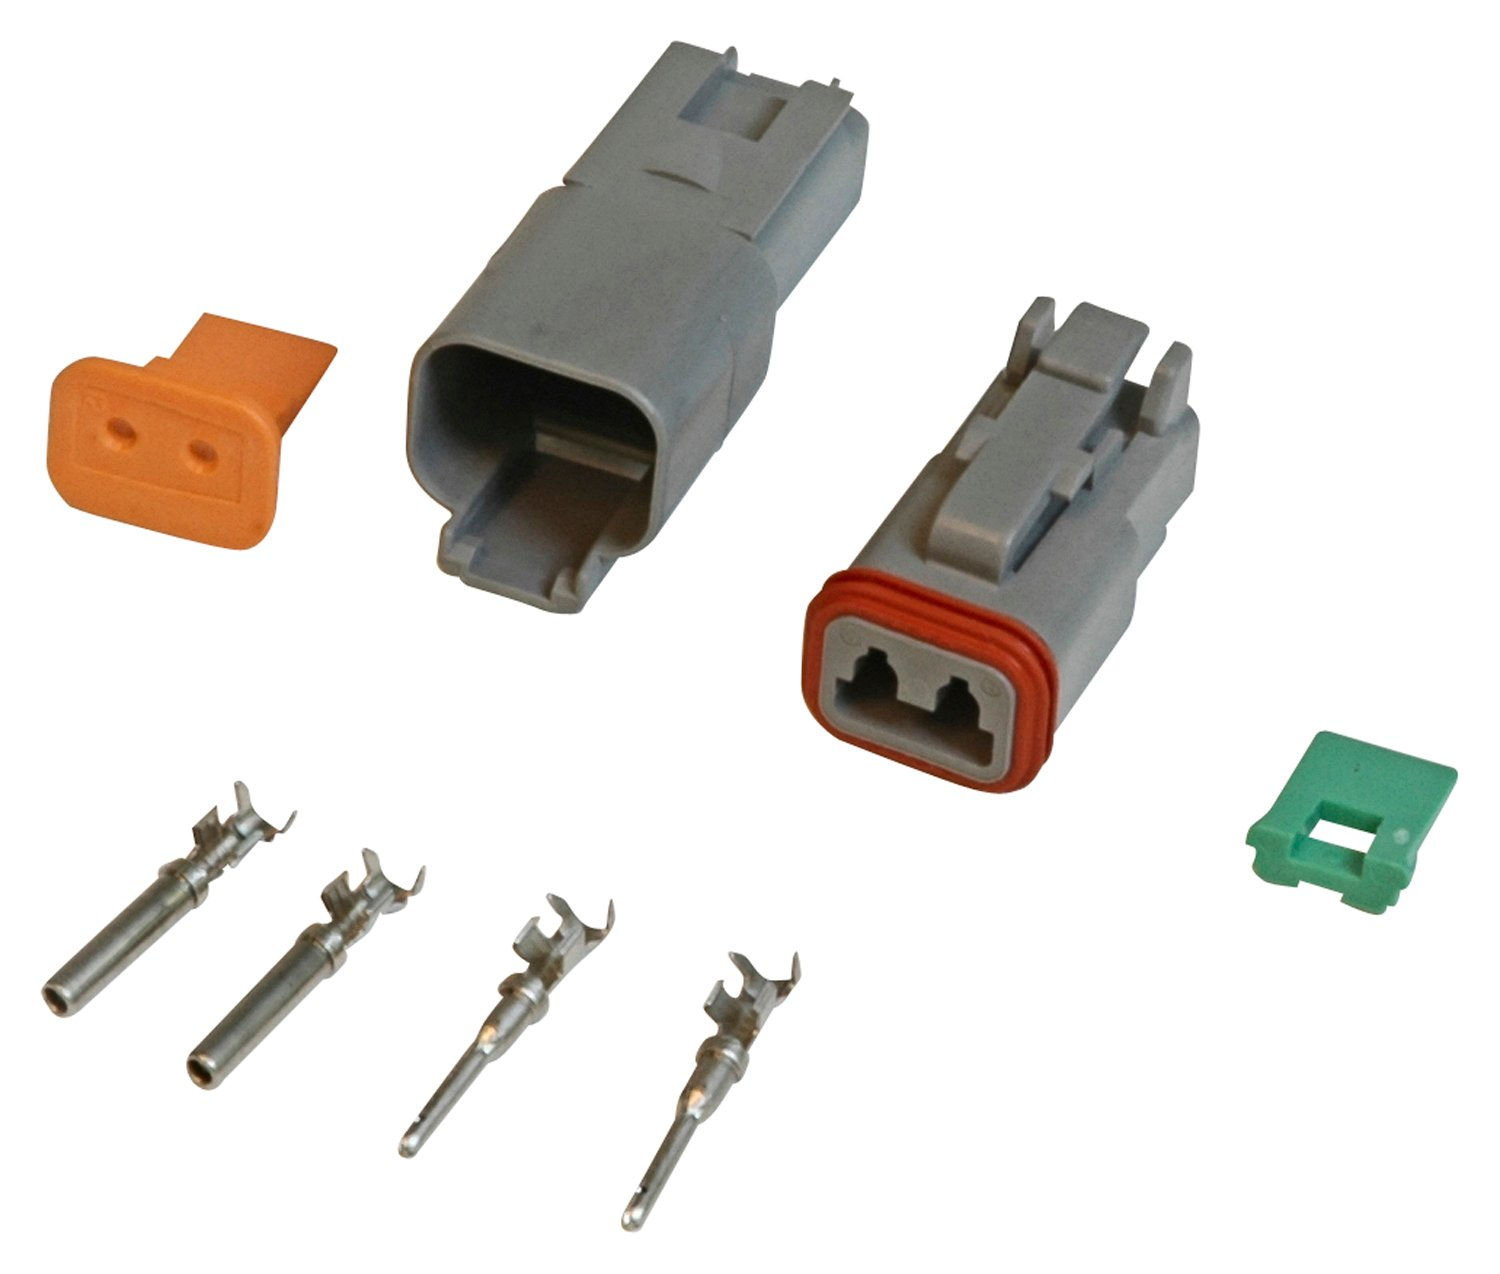 8183 - 2-Pin Deutsch Connector, 16 gauge Image